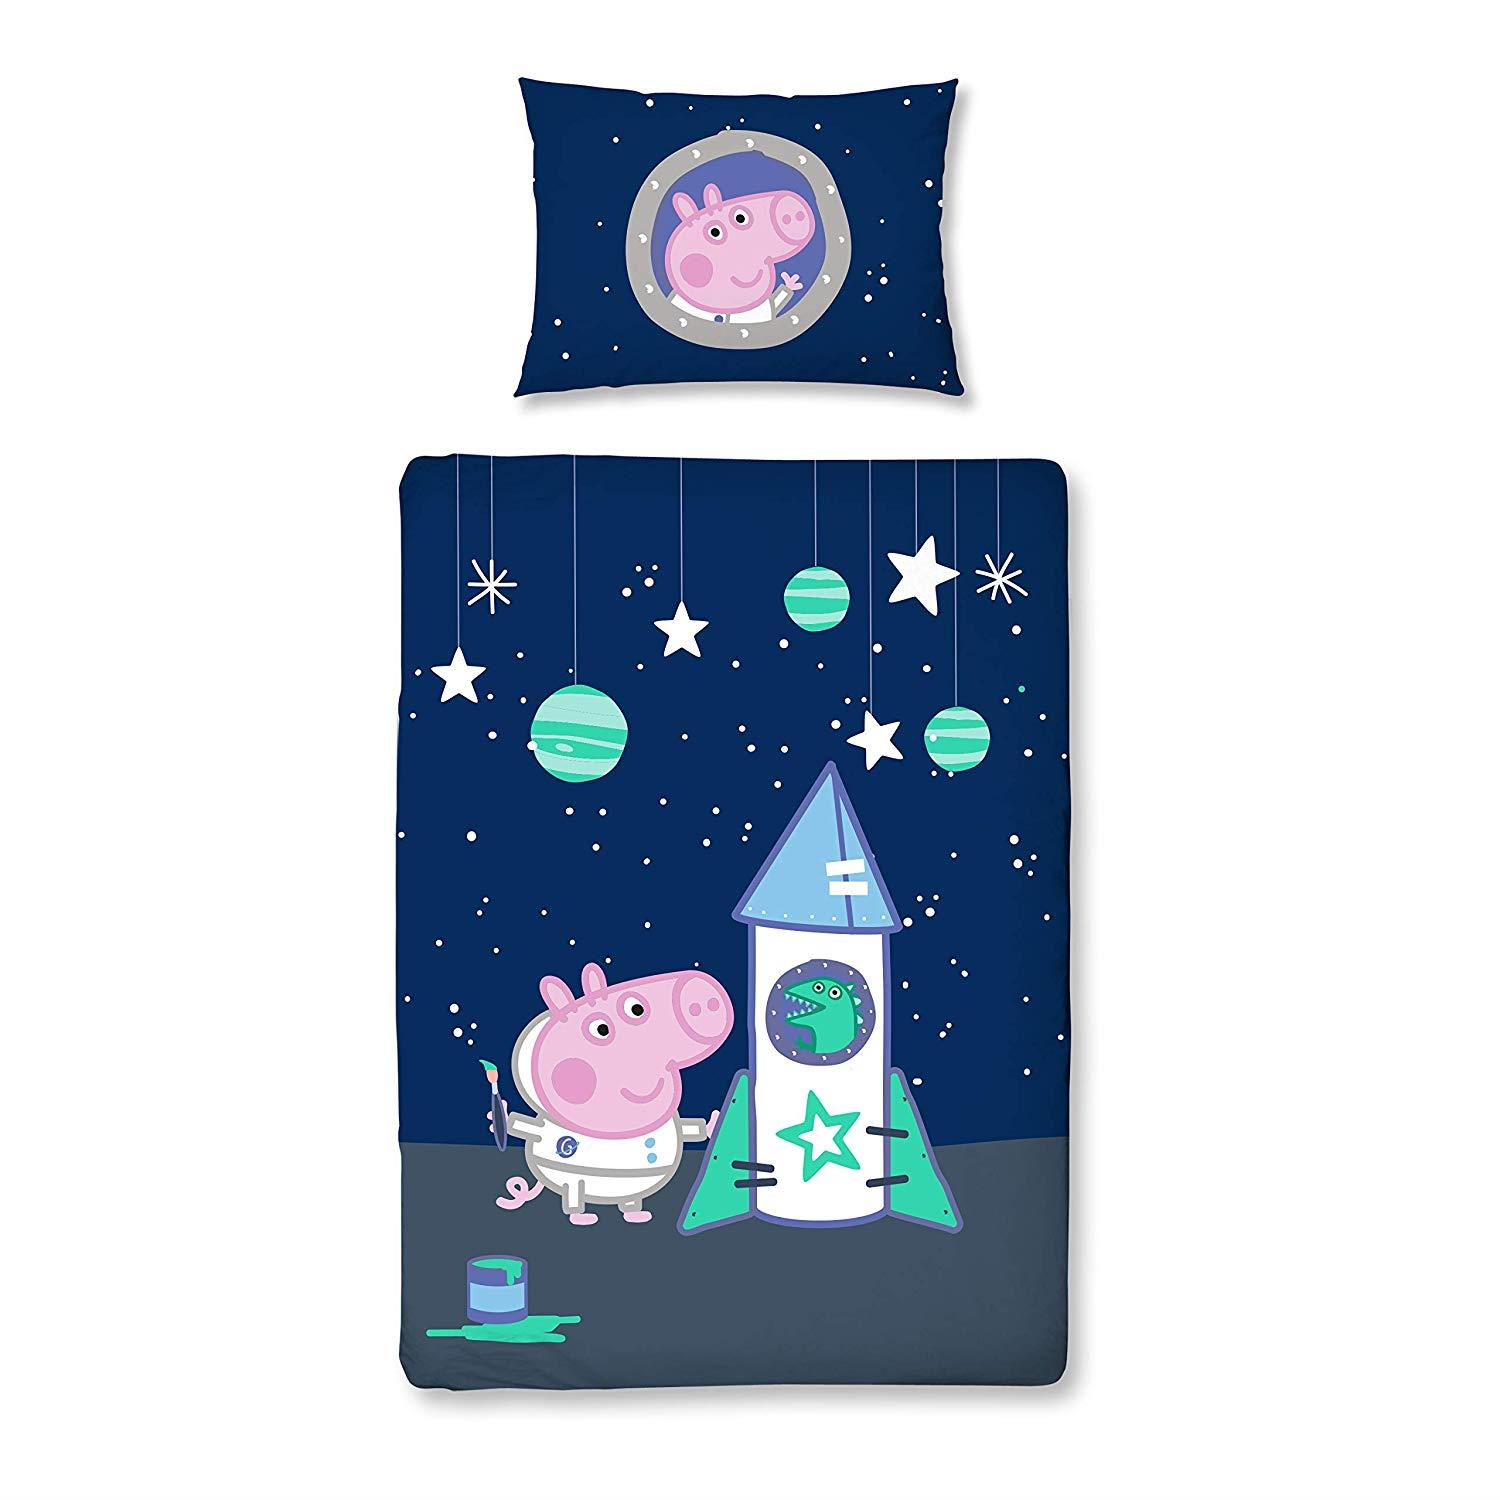 Oficial-Peppa-Pig-George-fundas-nordicas-SINGLE-doble-Ropa-De-Cama-Reversible miniatura 3